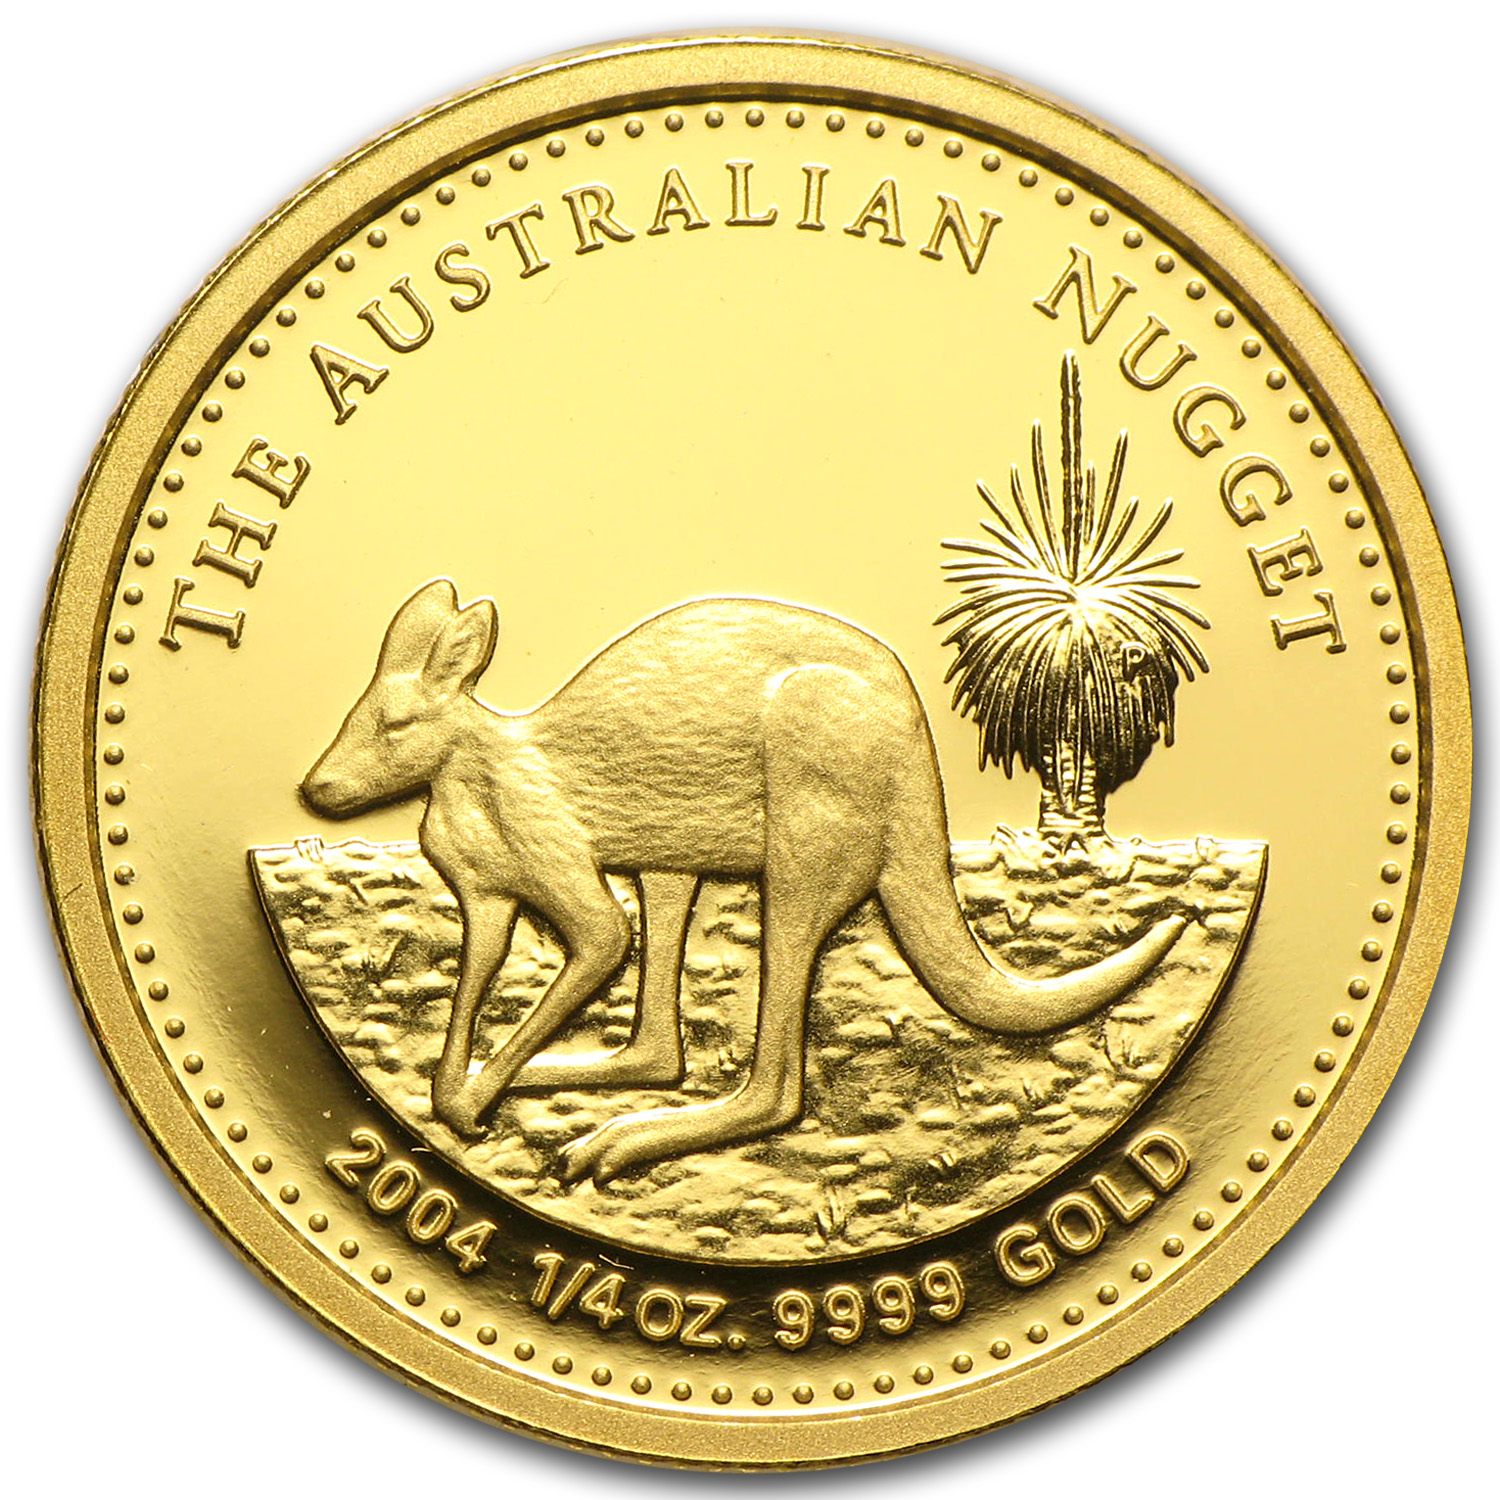 2004 1/4 oz Australian Proof Gold Nugget